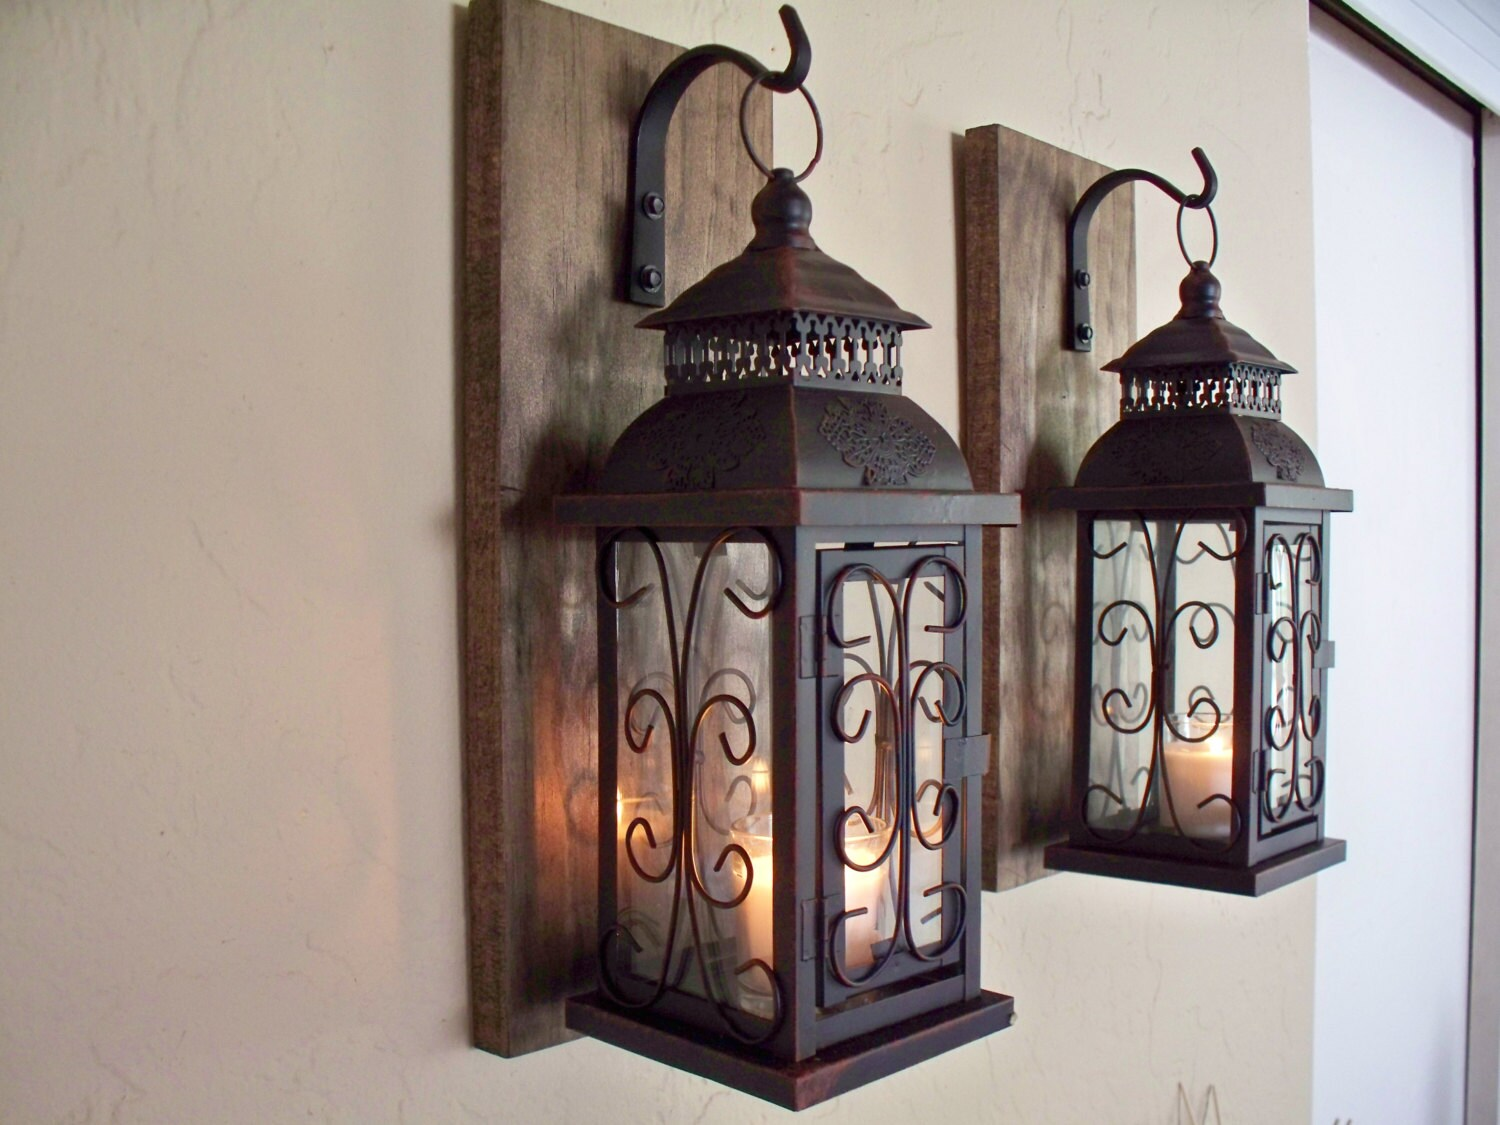 Lantern pair wall decor 2 wall sconces housewarming gift ... on Decorative Wall Sconces Candle Holders Centerpieces Ebay id=75516